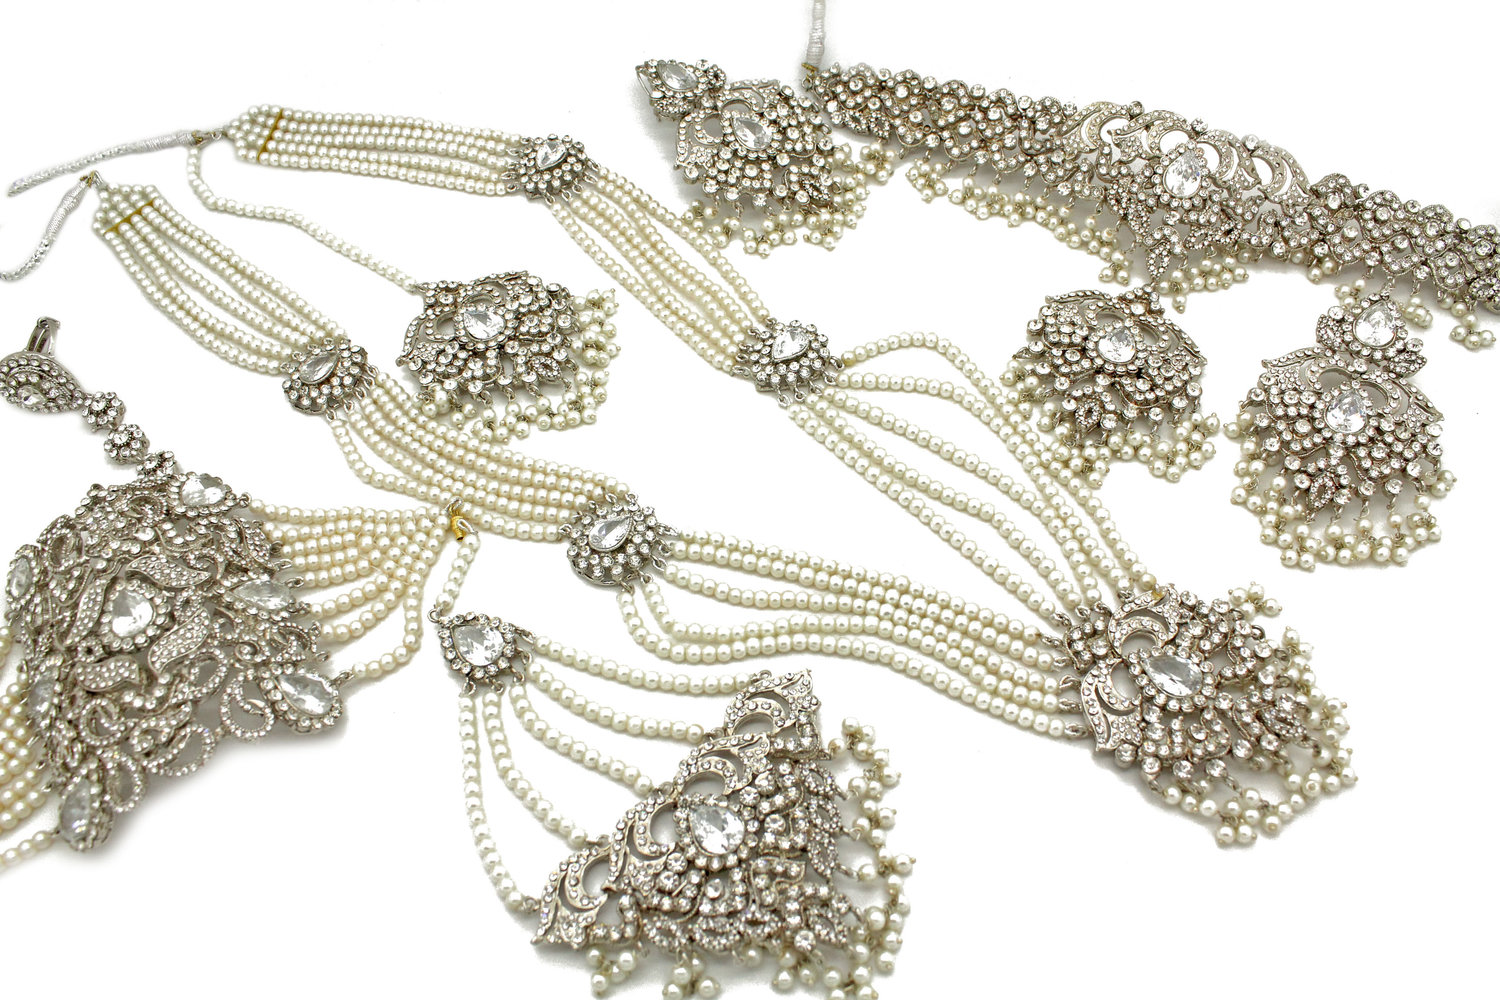 5778d0d70bb4a Silver 'JANAA' Mala Necklace Jewellery Bridal Set — Glimour Jewellery